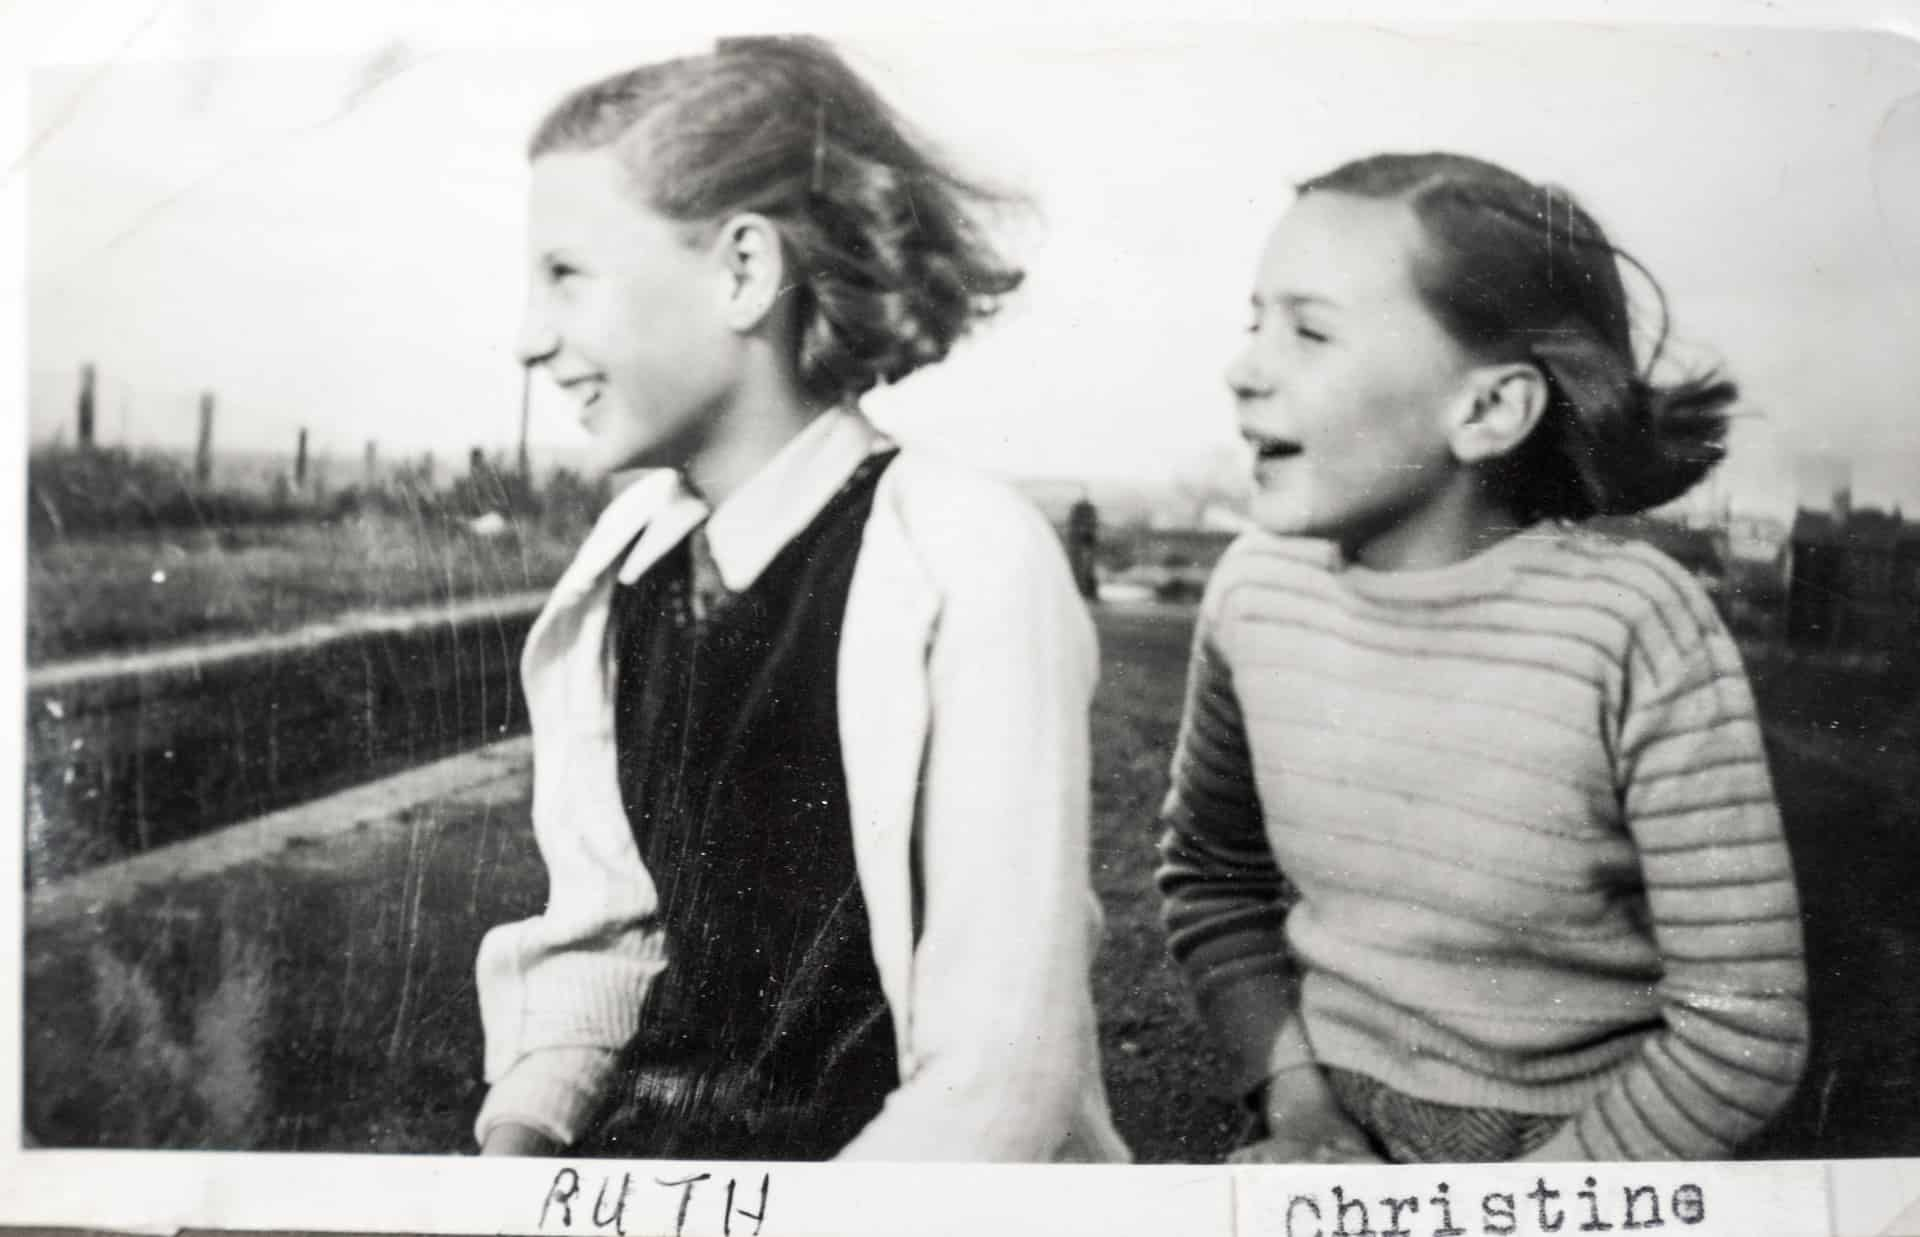 Ruth and her sister Christine sitting on Brades Hall Locks, 1949, taken by their father, Will King.